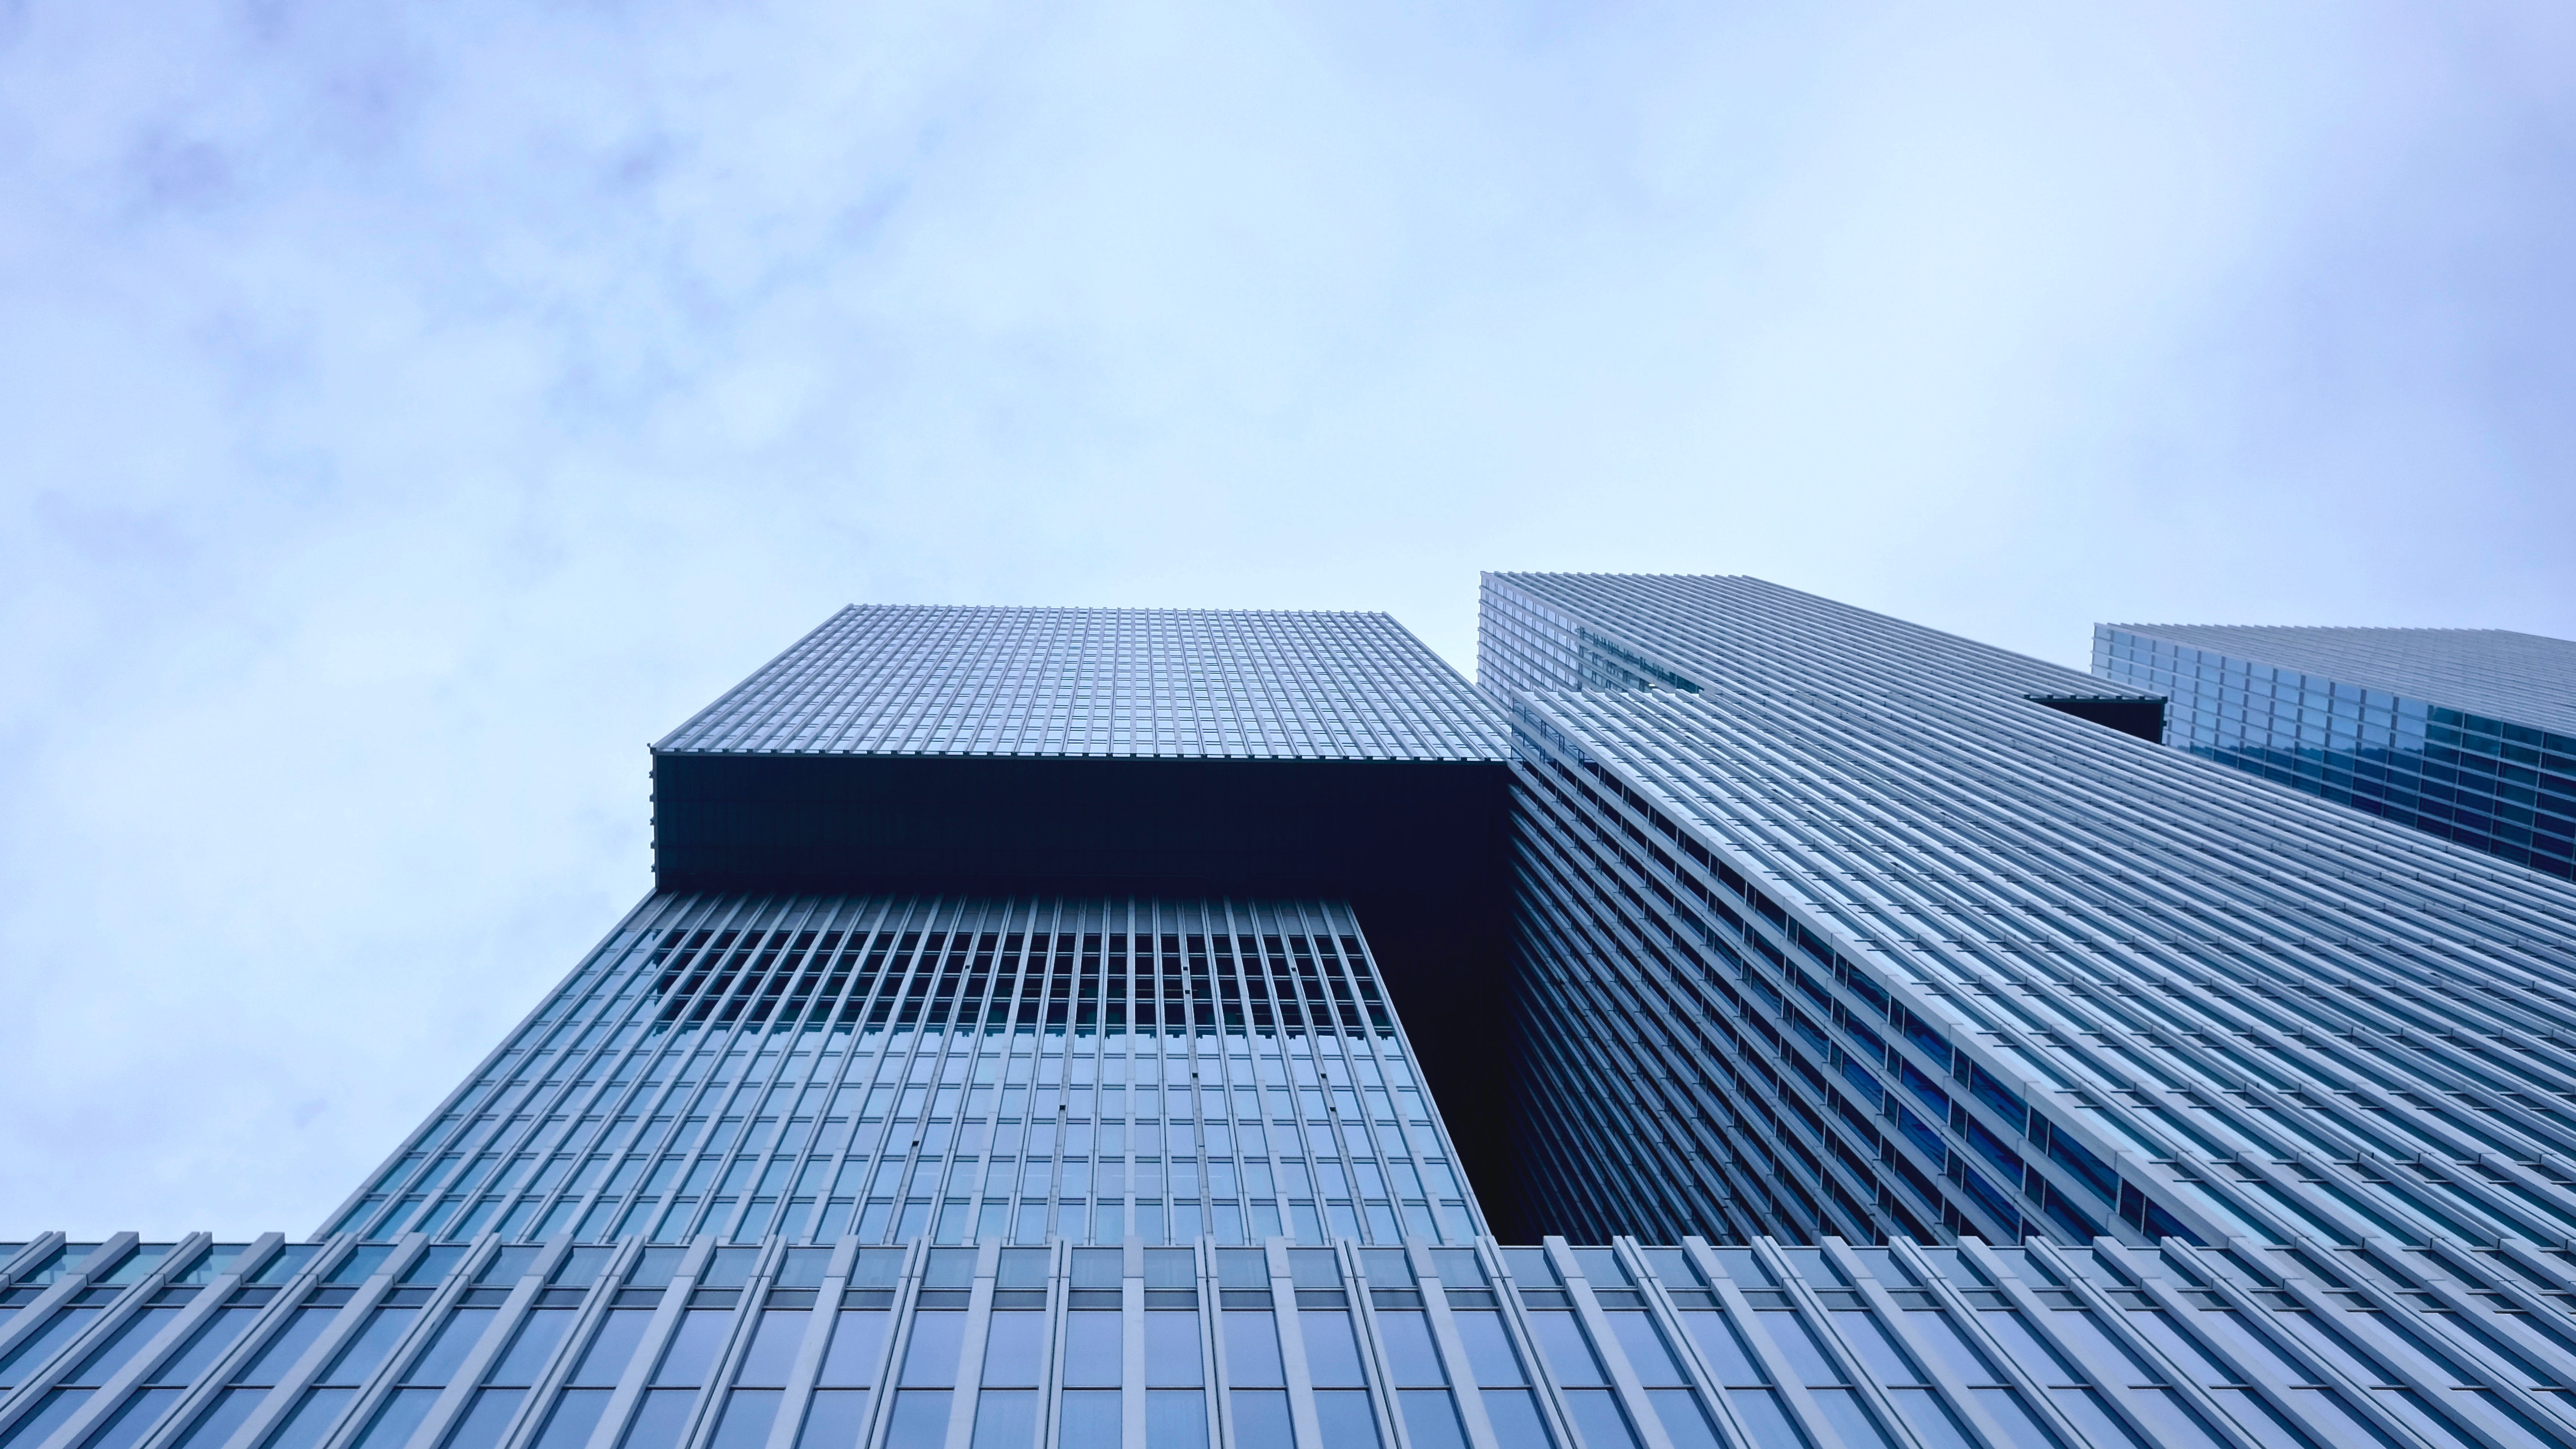 White and Blue Building during Daytime · Free Stock Photo